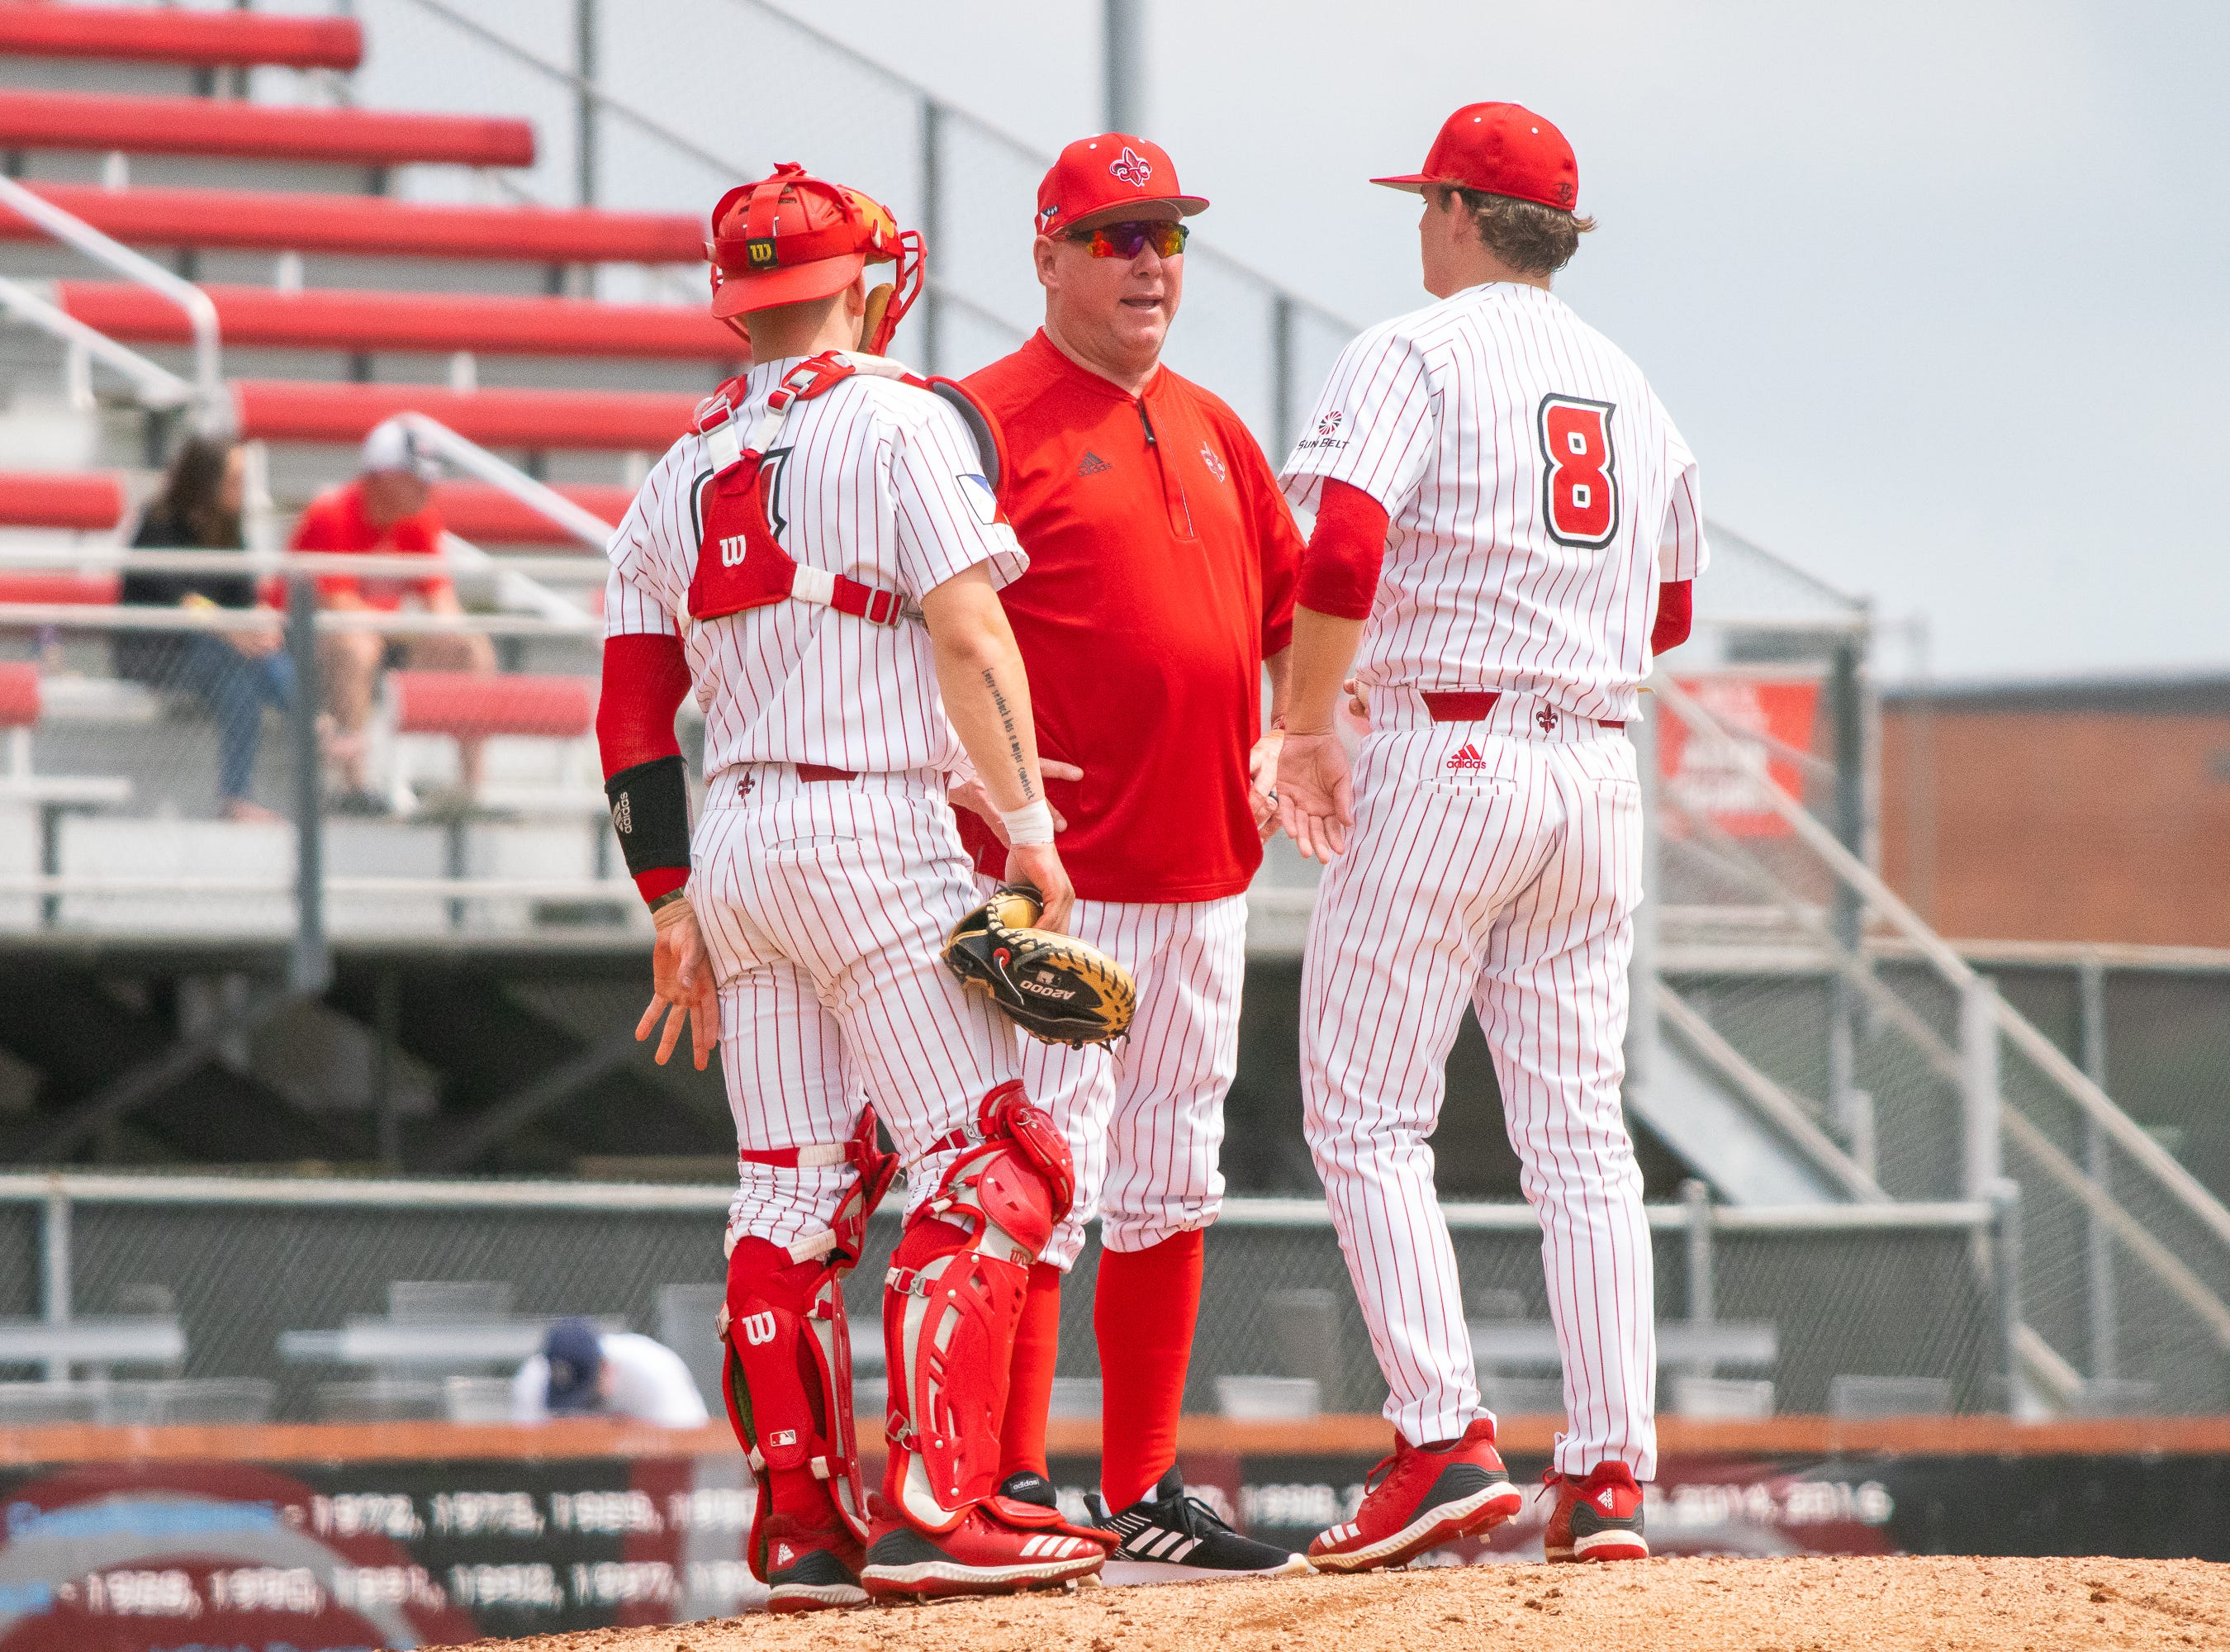 UL's head baseball coach Tony Robichaux talks to pitcher Blake Schultz on the mound as the Ragin' Cajuns take on the Loyola Marymount Lions at M.L. Tigue Moore Field on March 10, 2019.